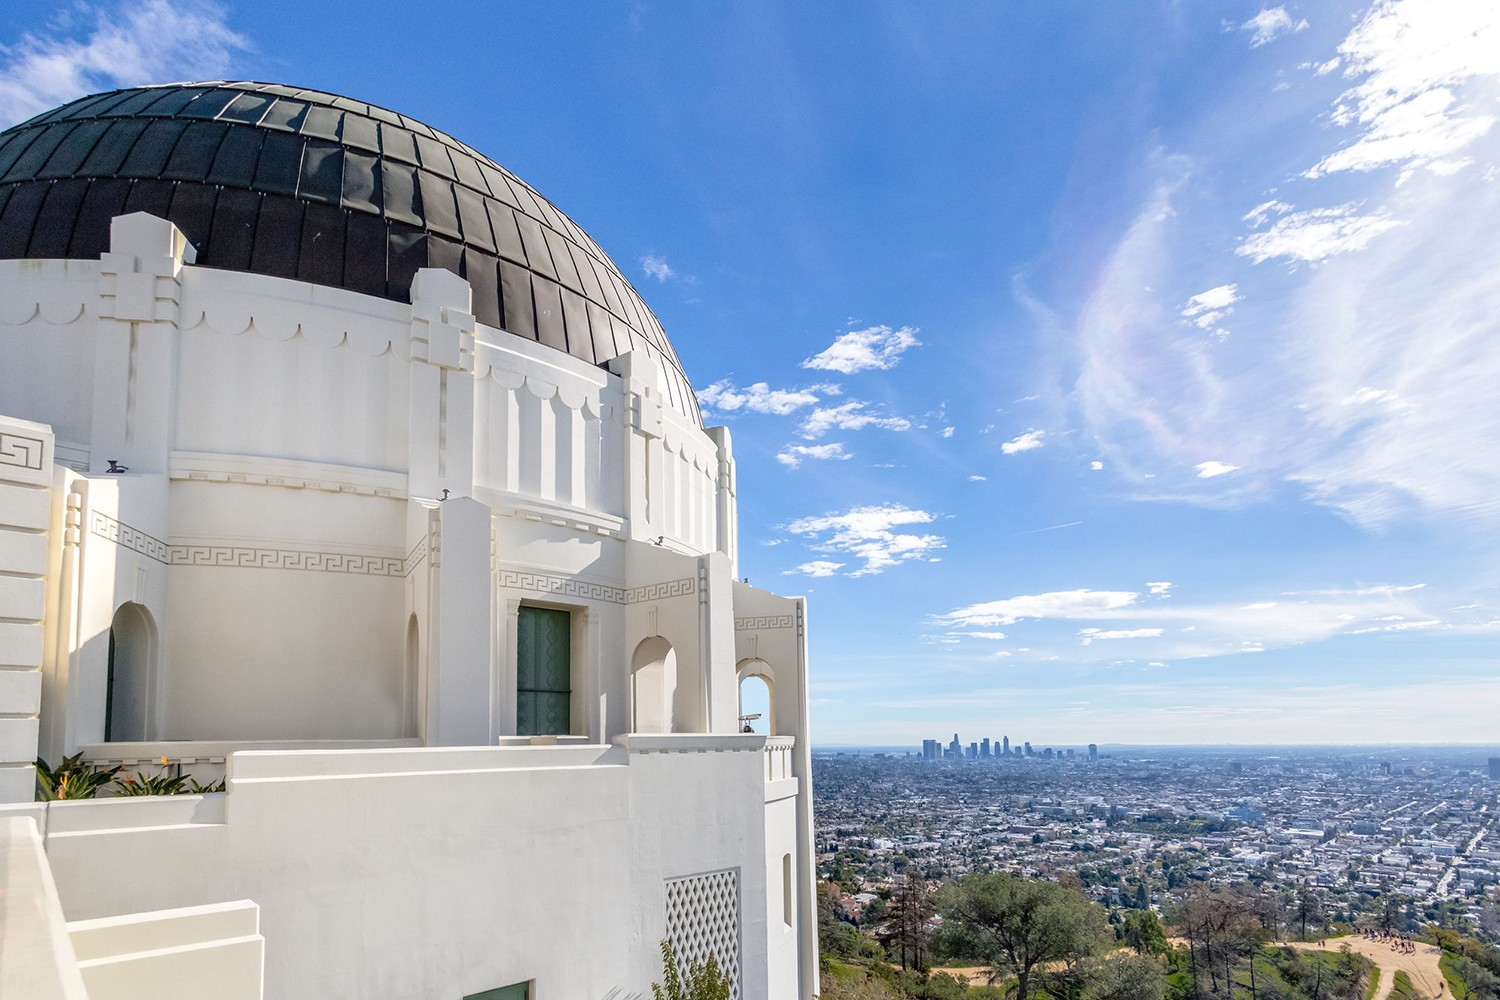 Free things to do in Los Angeles - Griffith Observatory and city skyline - los angeles, california, usa featured by popular Los Angeles Blogger, My Beauty Bunny